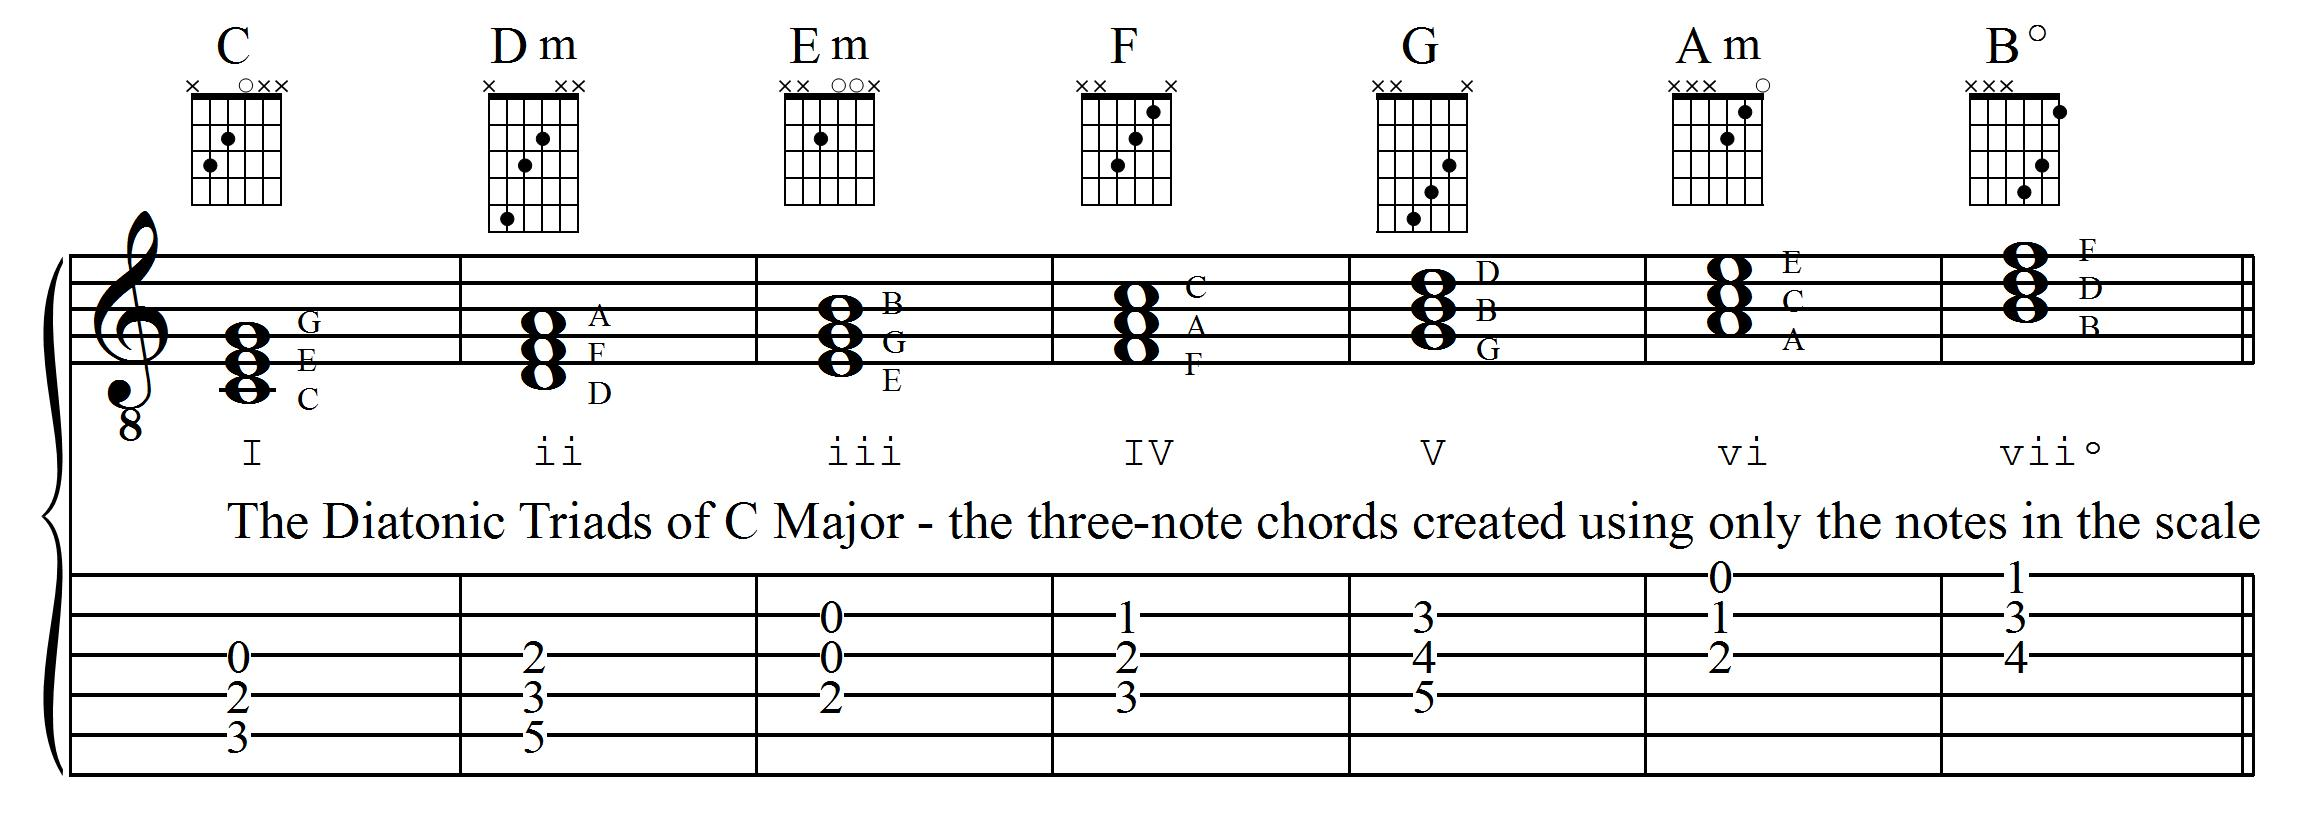 The Diatonic Triads in the C Major Scale